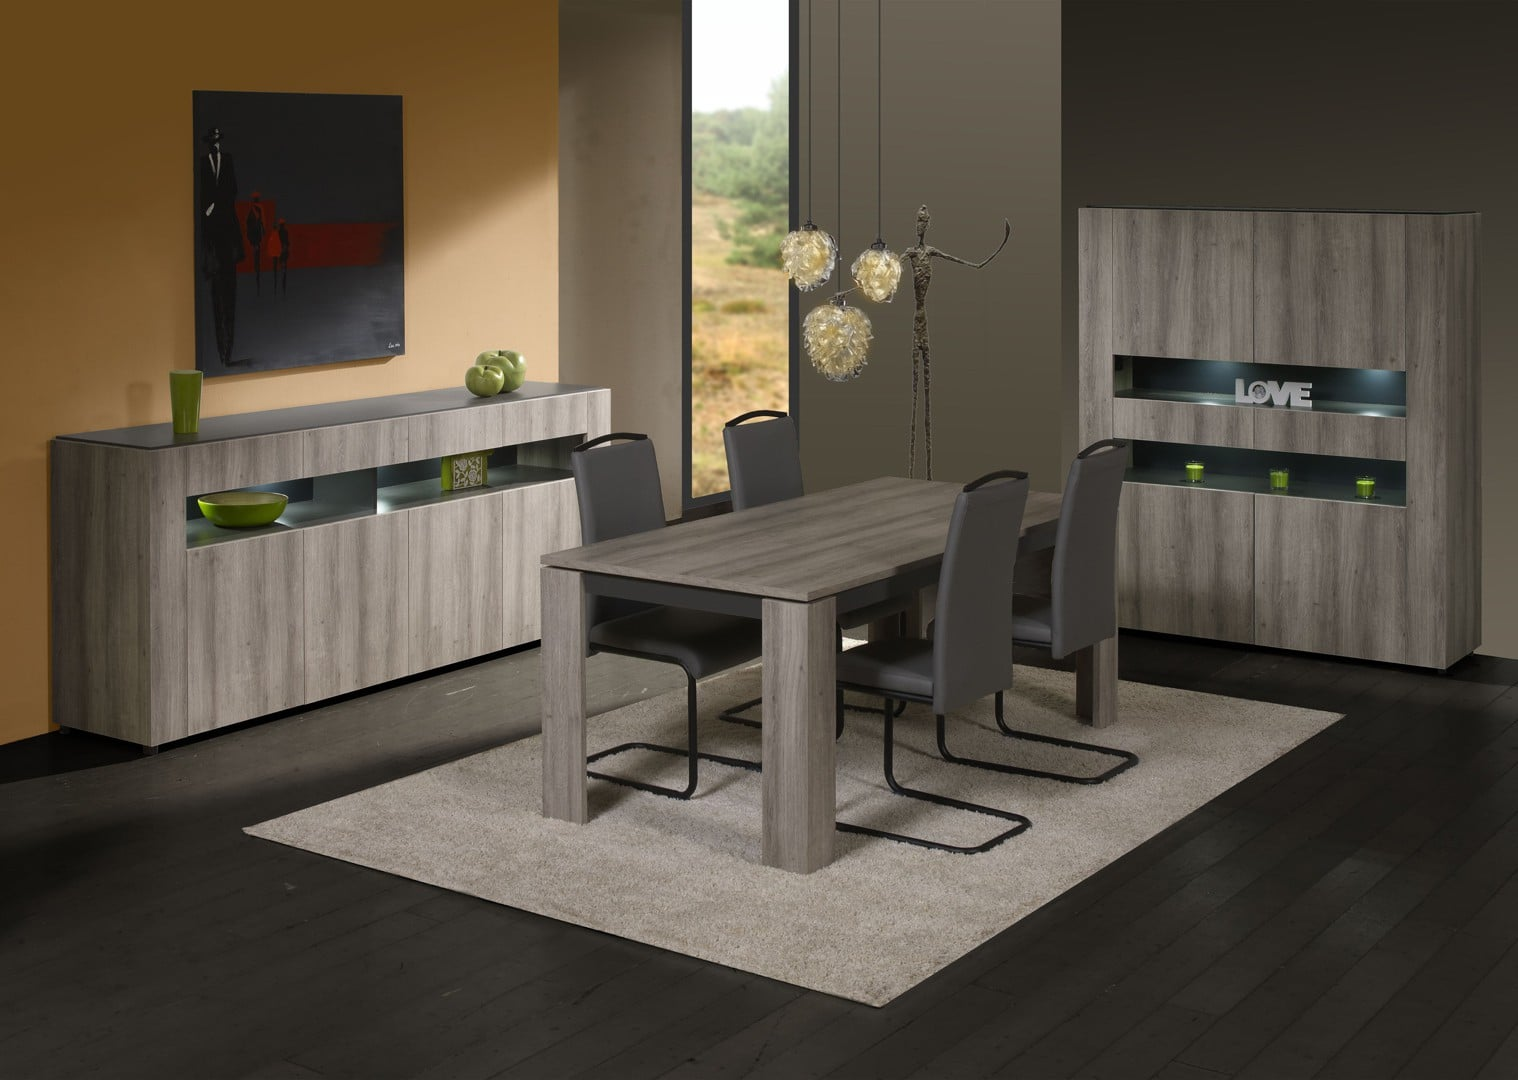 moderniser votre int rieur gr ce une salle manger design le blog matelpro. Black Bedroom Furniture Sets. Home Design Ideas